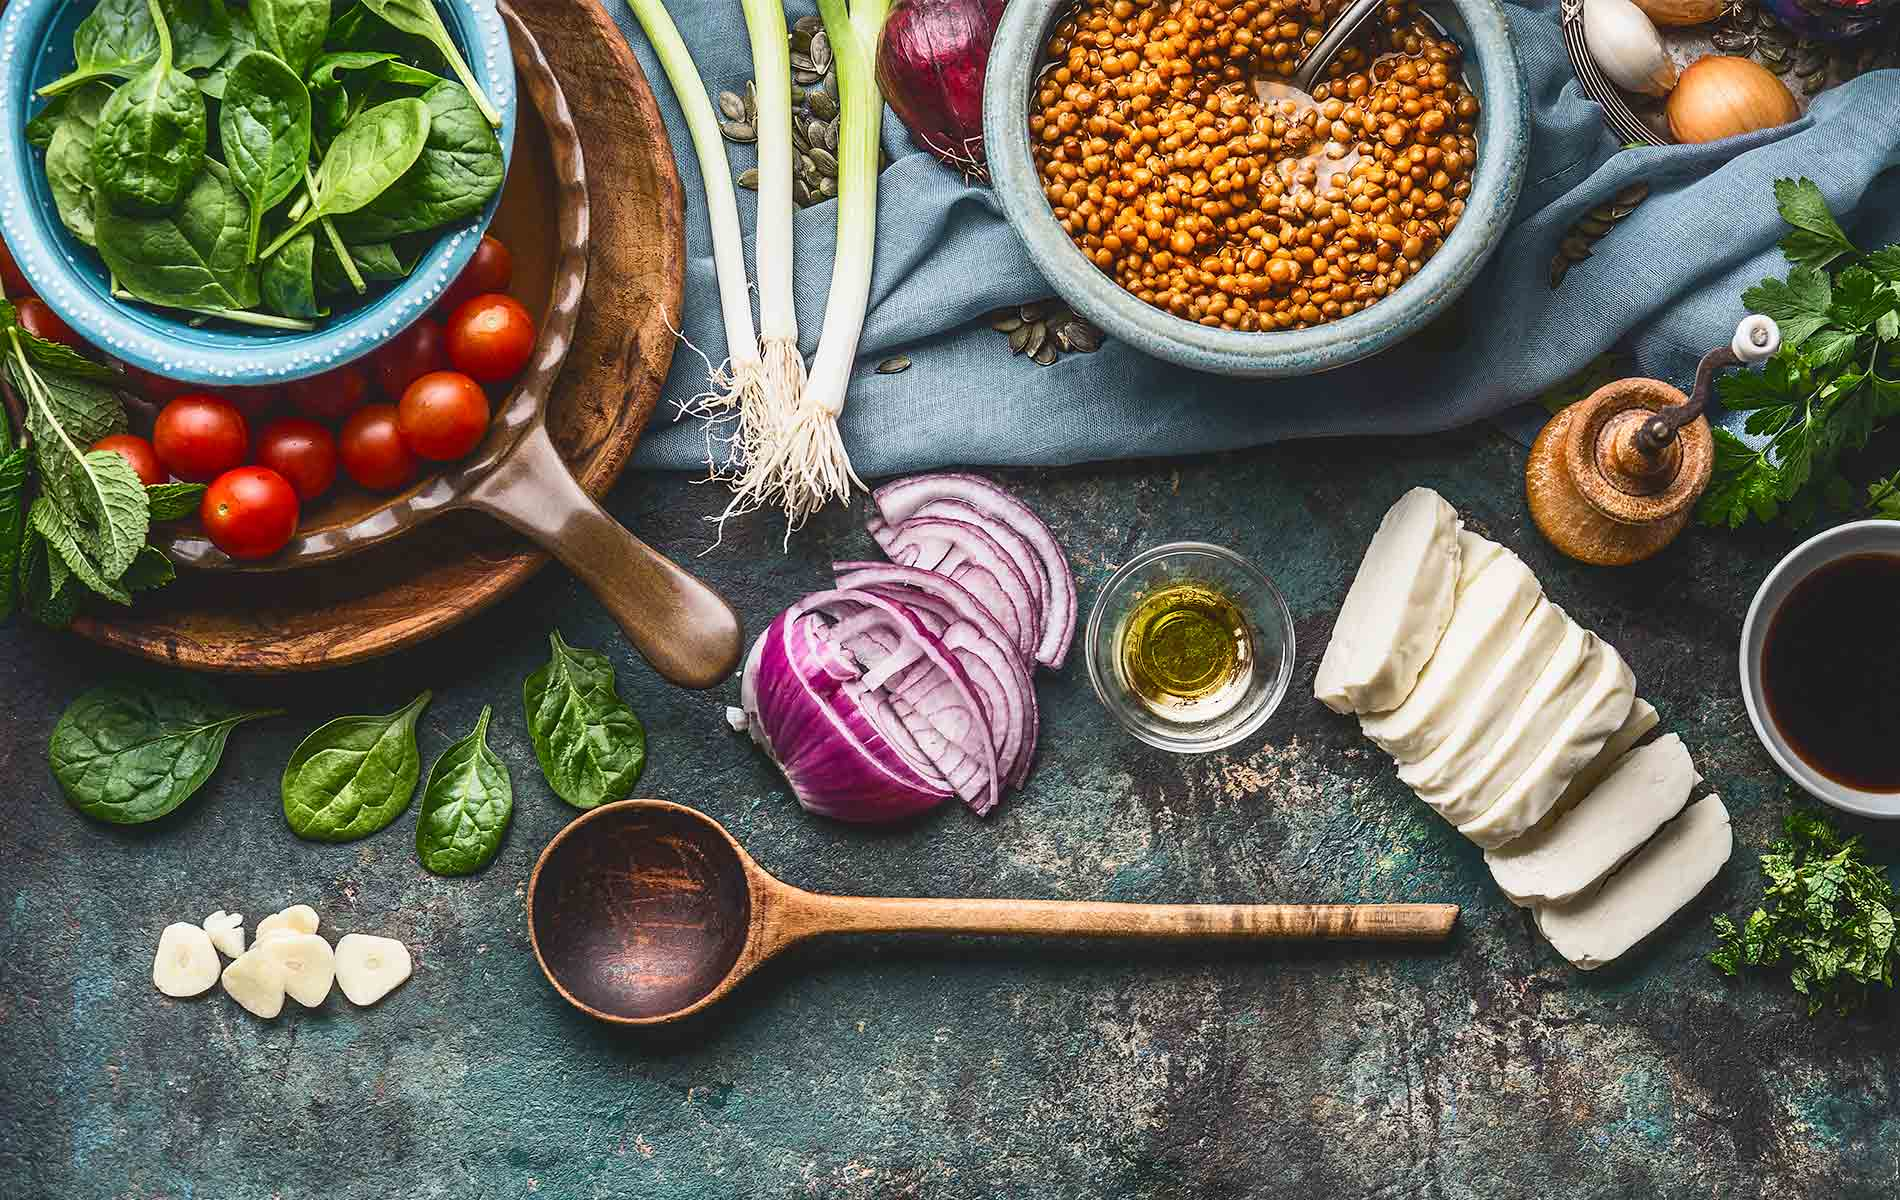 Vegetarian ingredients for tasty lentil dishes on rustic kitchen table background with cooking spoon and utensils, top view, border. Healthy eating and cooking, clean or diet food concept